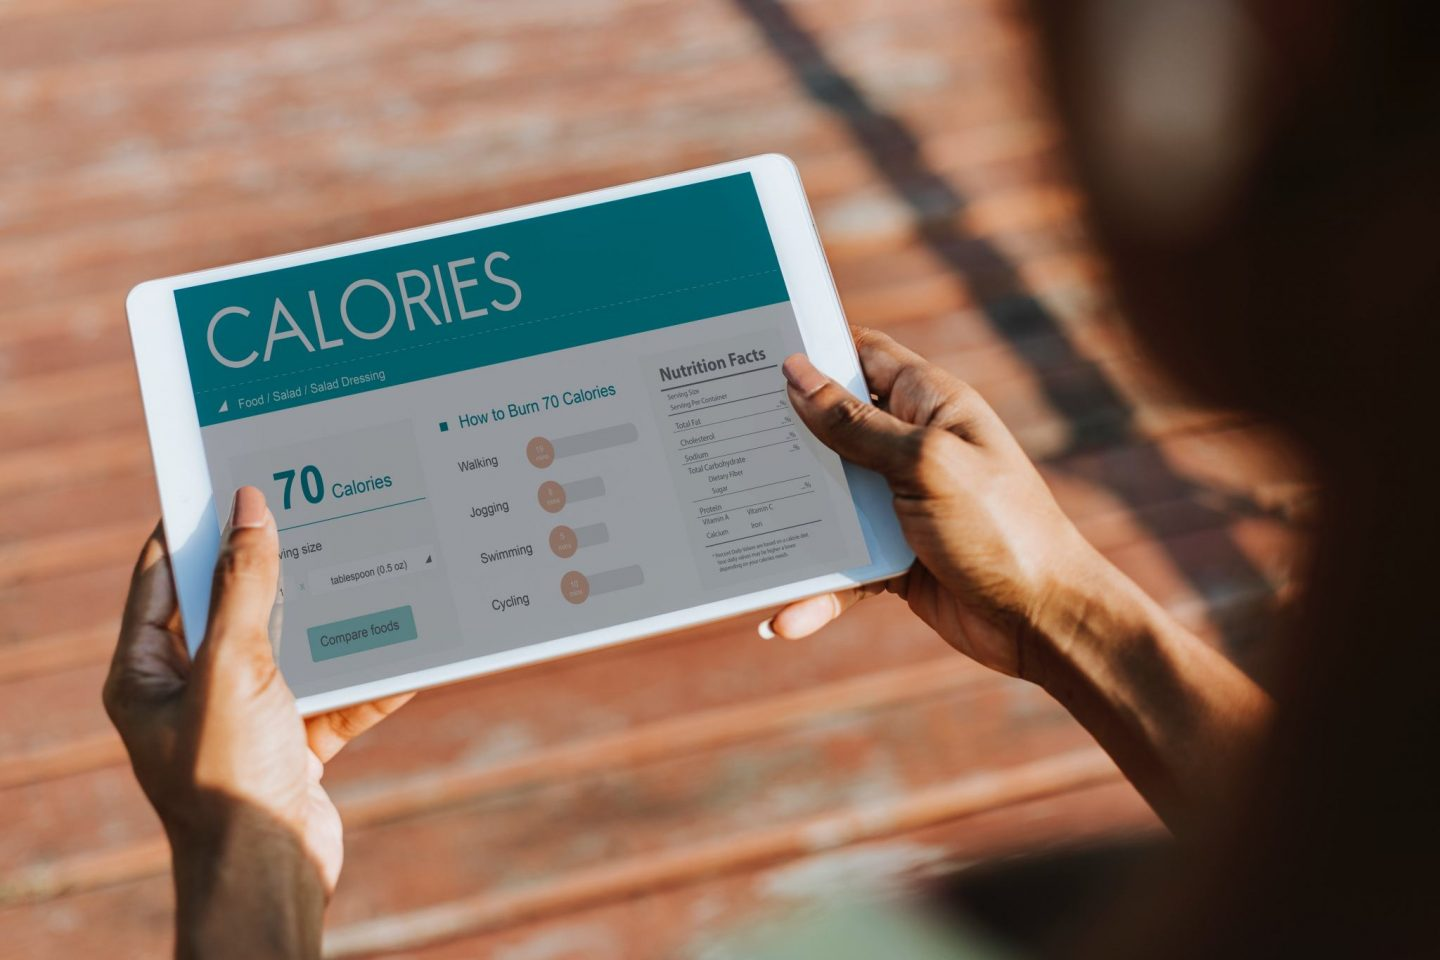 calorie counting can make you too stressed to lose weight